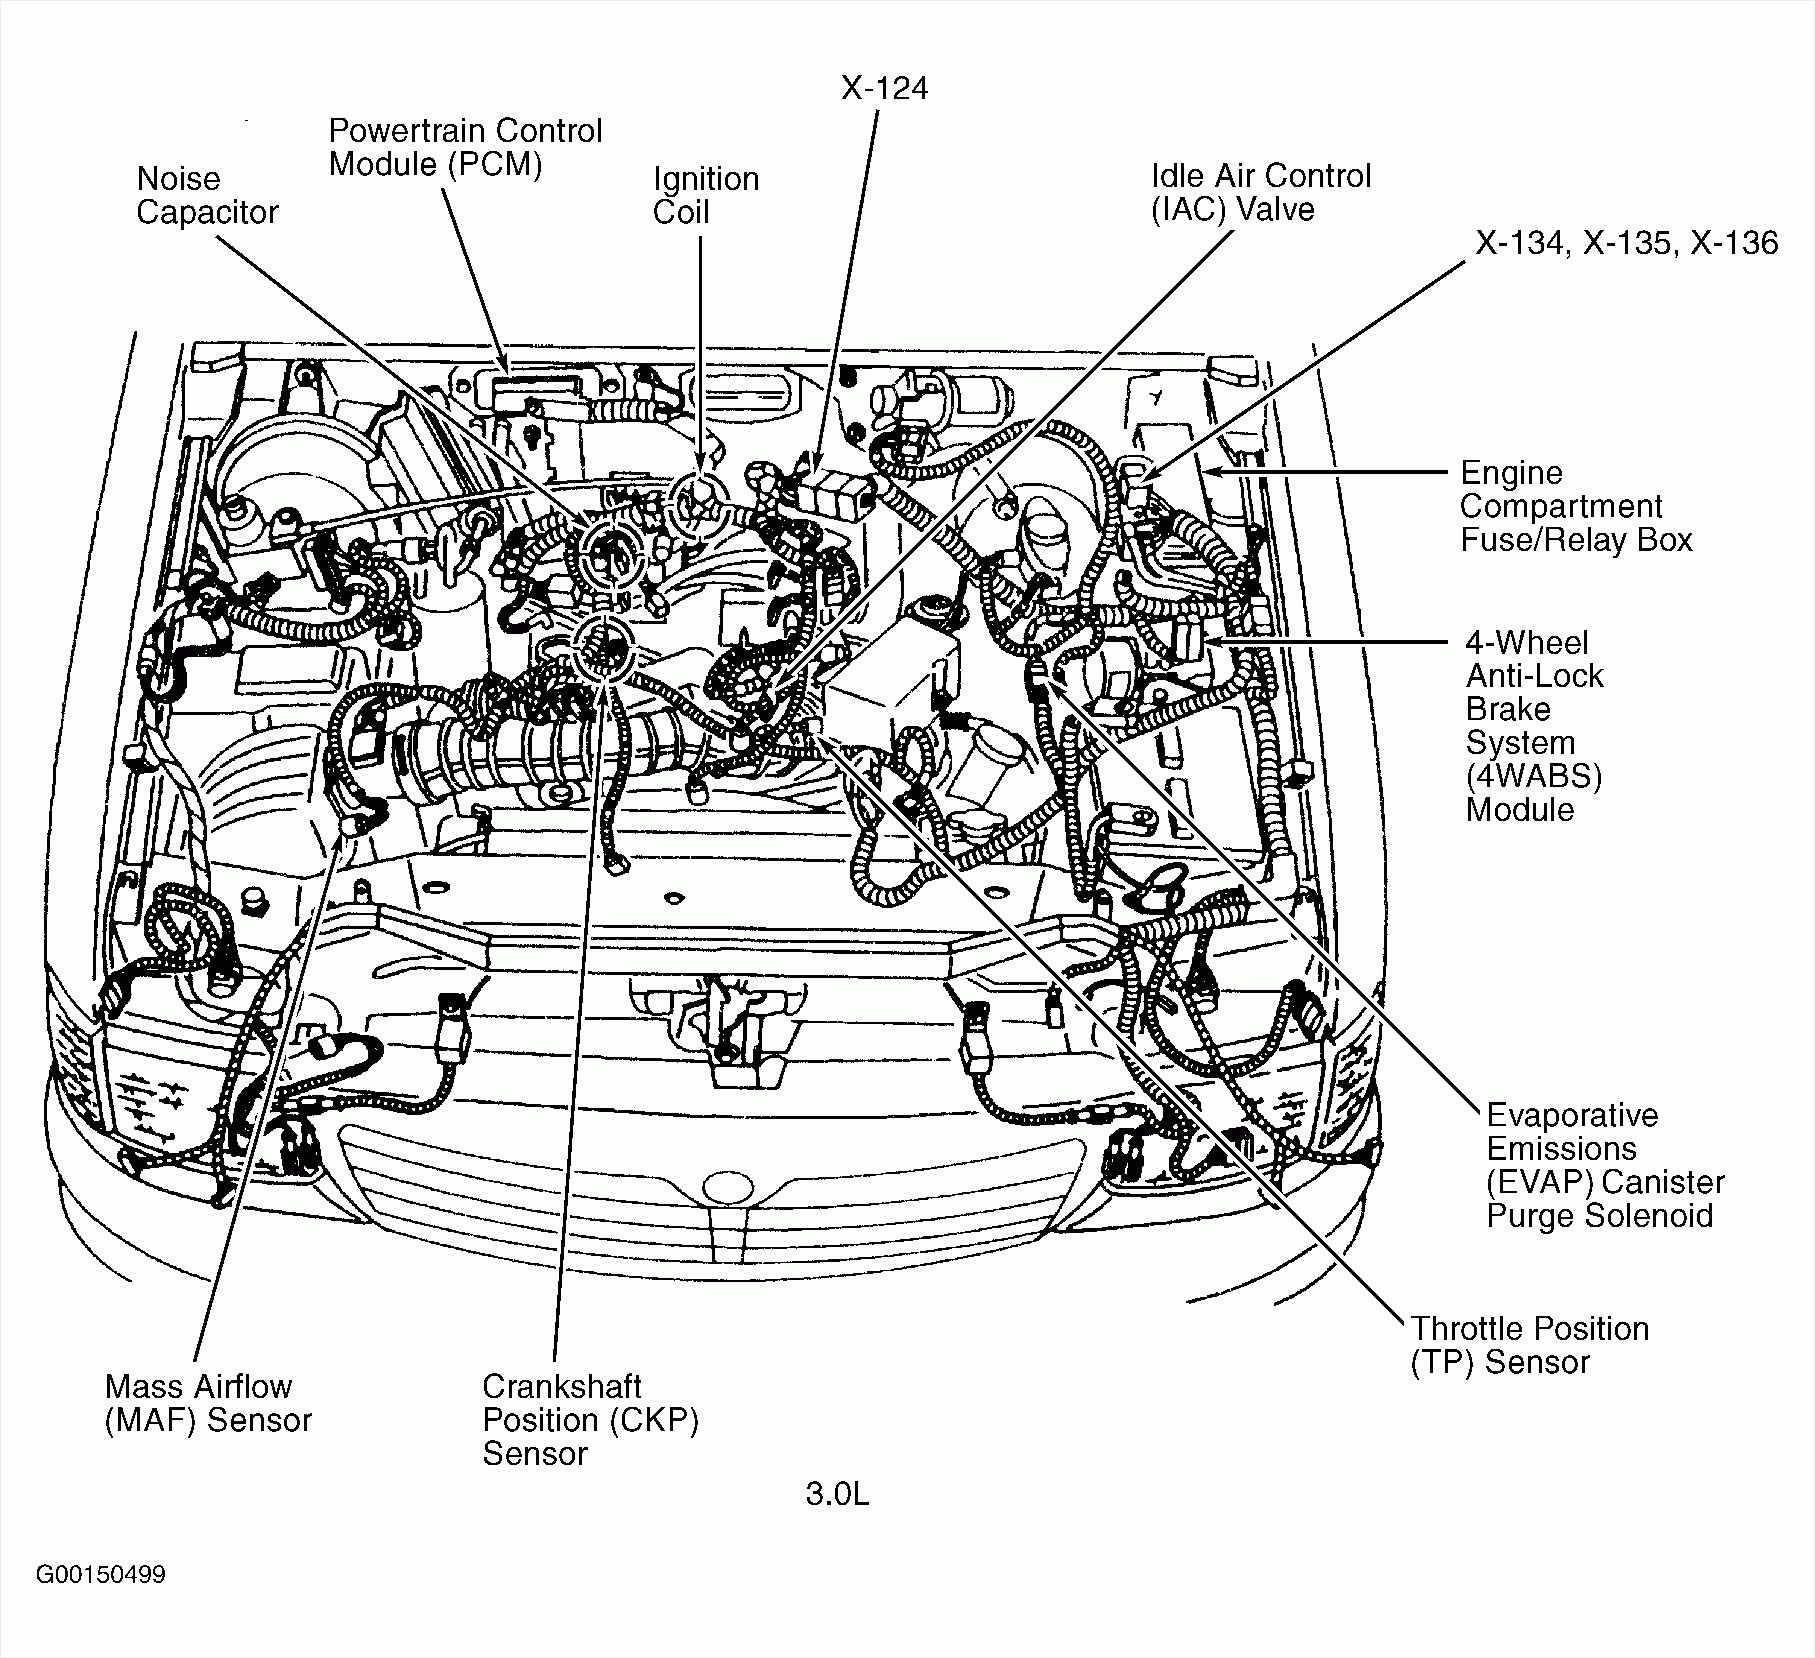 hight resolution of 1996 ford thunderbird engine diagram wiring diagram expert 95 ford thunderbird engine diagram